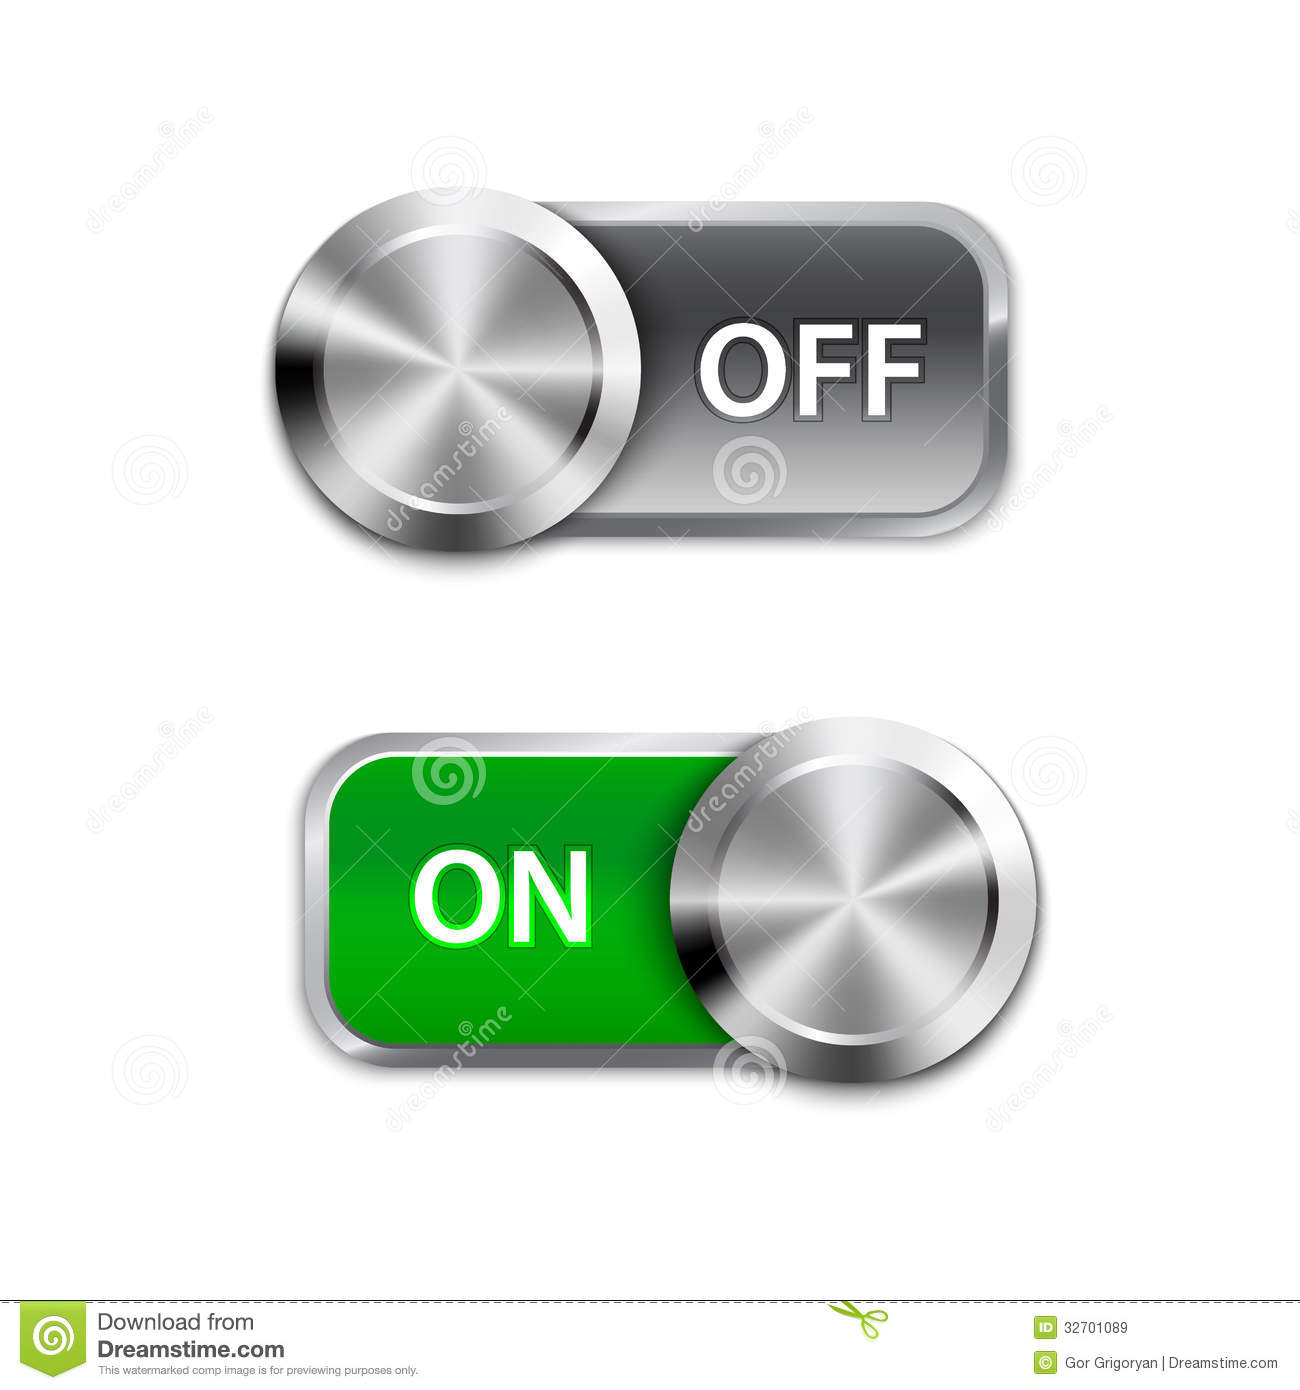 Toggle switch on and off position onoff sliders stock vector toggle switch on and off position onoff sliders biocorpaavc Choice Image